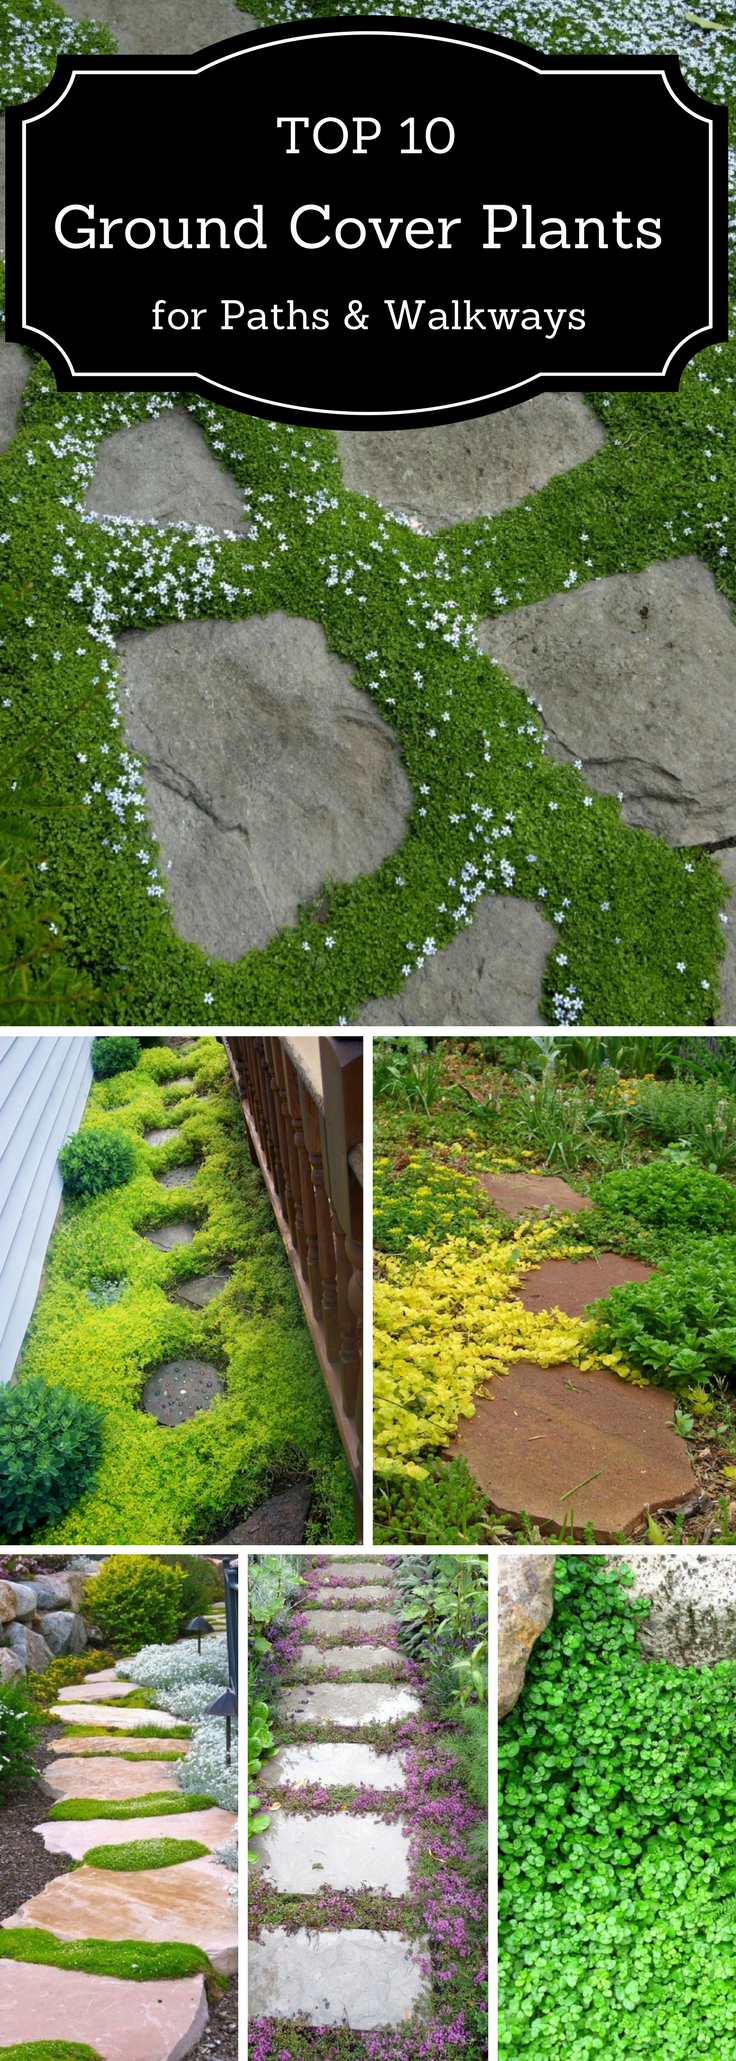 Top 10 Plants And Ground Cover For Your Paths And Walkways Garden Paths Garden Garden Shrubs